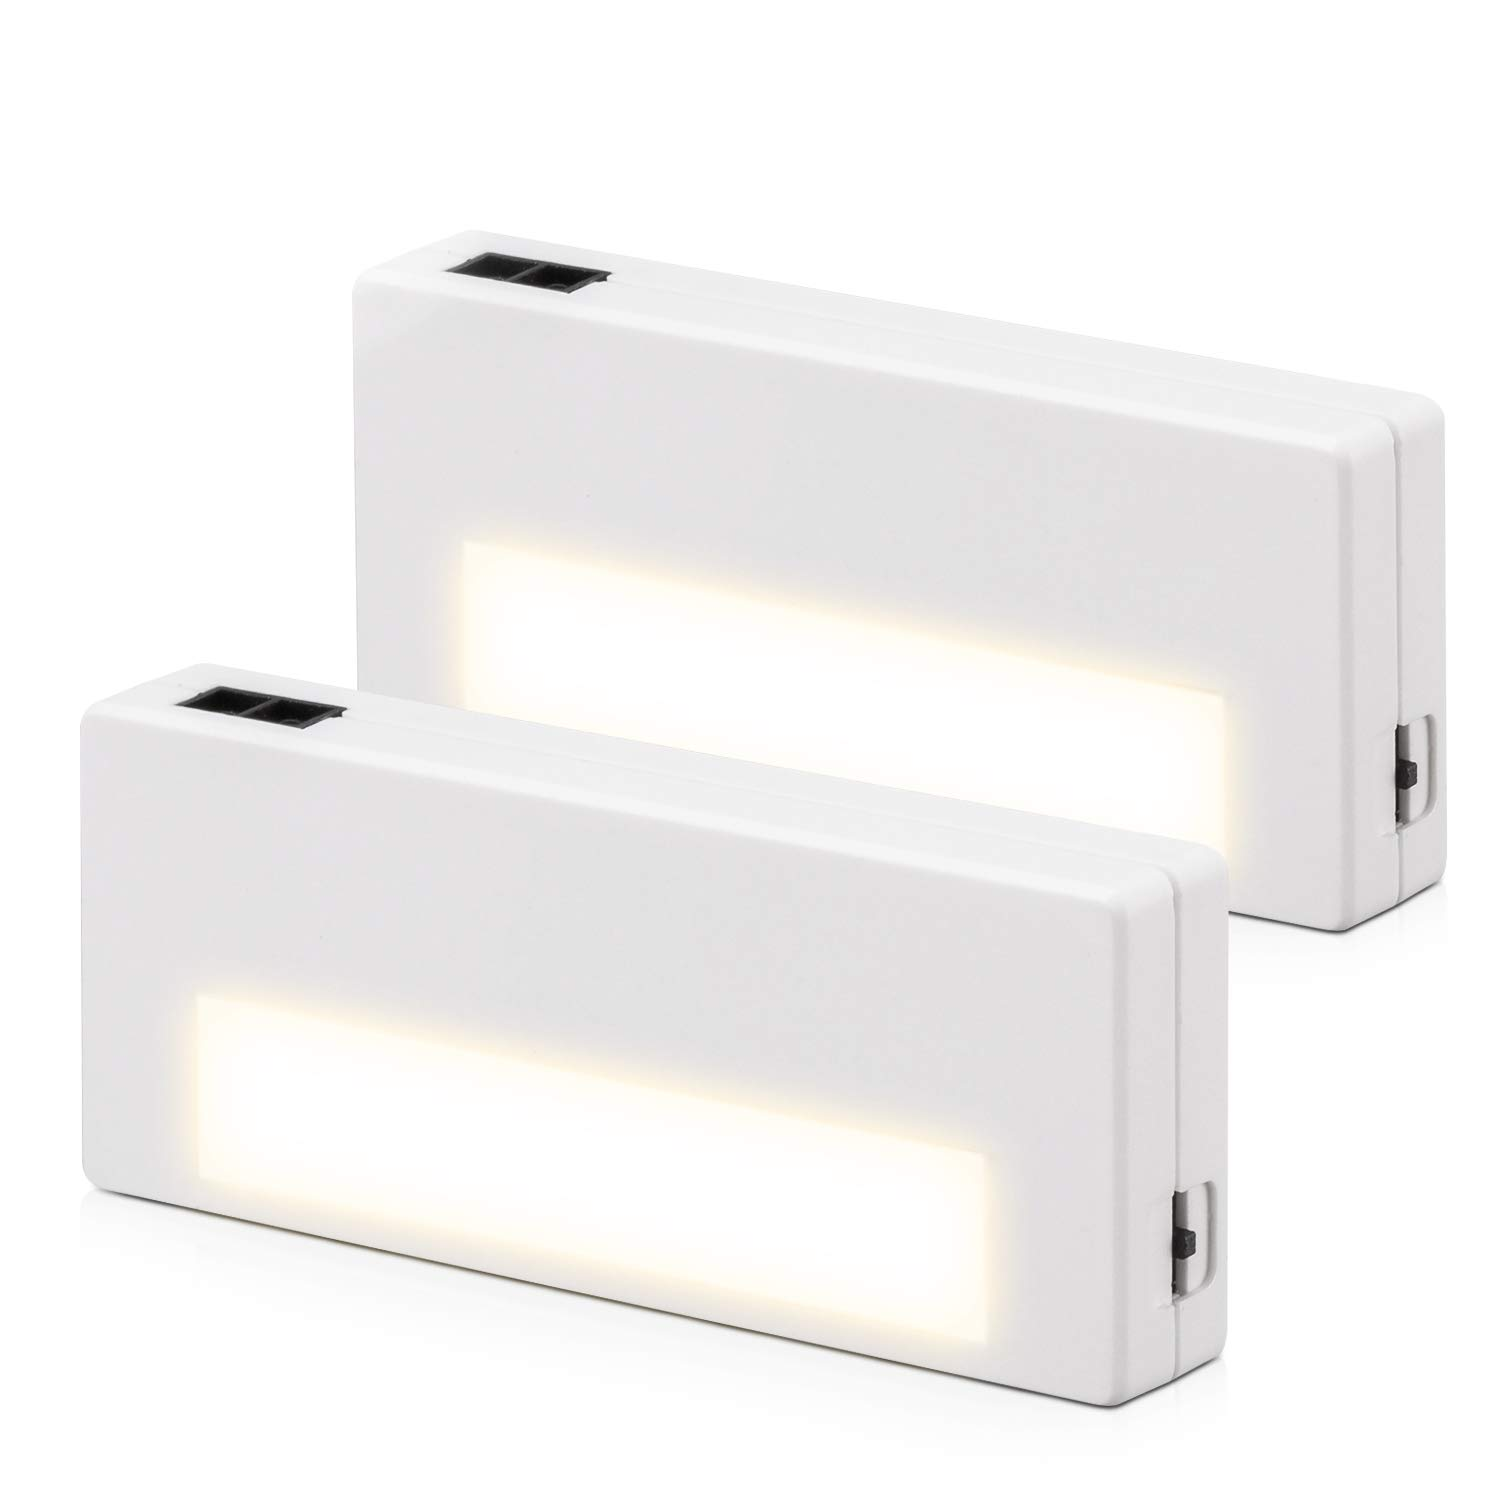 Mini Rechargeable Drawer Lights with Ultra-Long-Endurance Battery, Designed for Drawers, Cabinets, Storage Boxes (2 Pack)